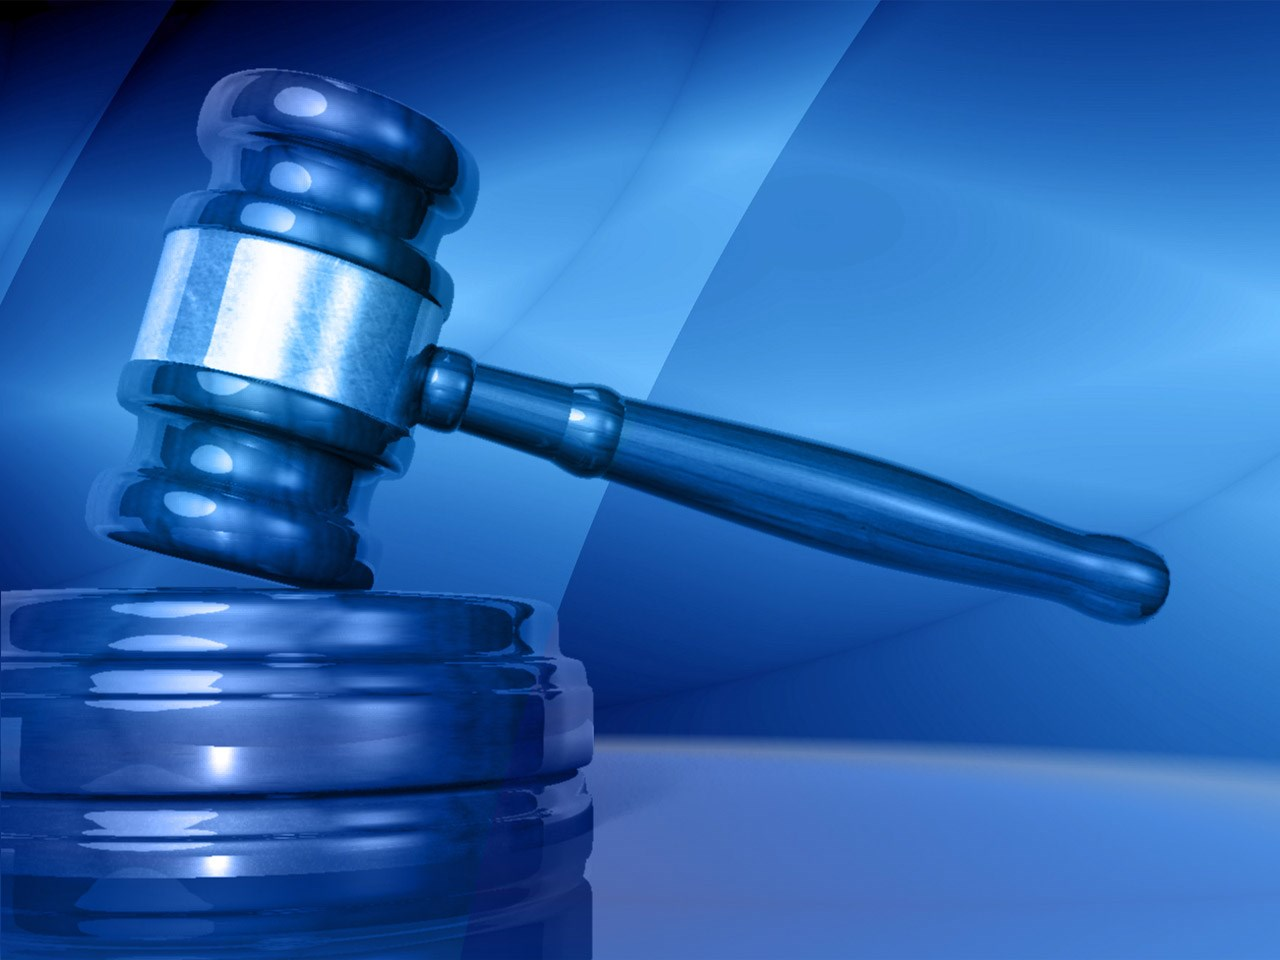 Teen withdraws not-guilty plea to manslaughter